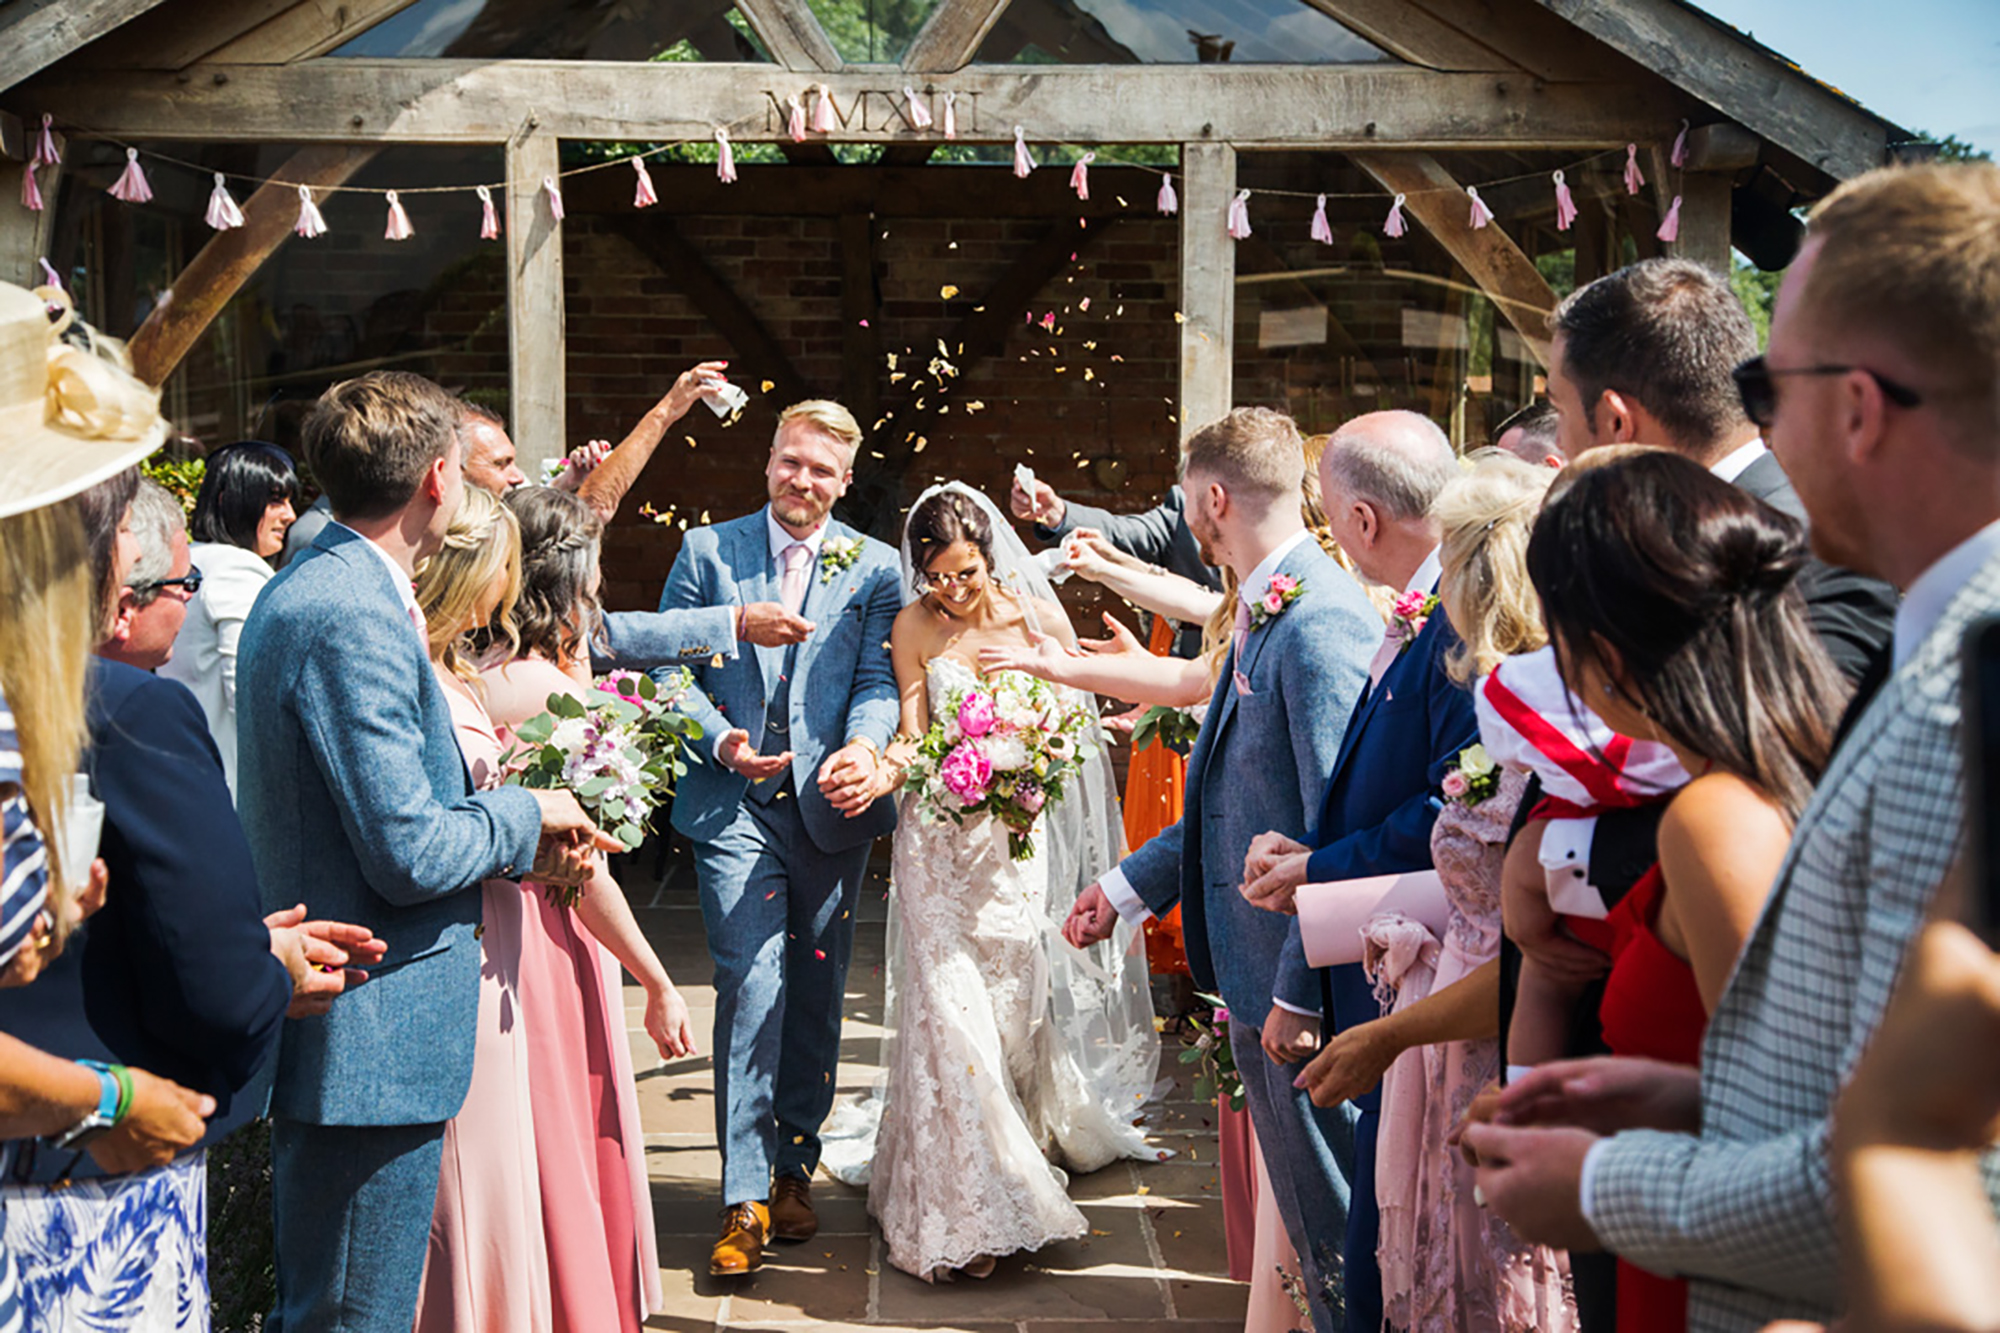 Bride and Groom are sprinkled with confetti by guests as they leave the Arbour at Upton Barn